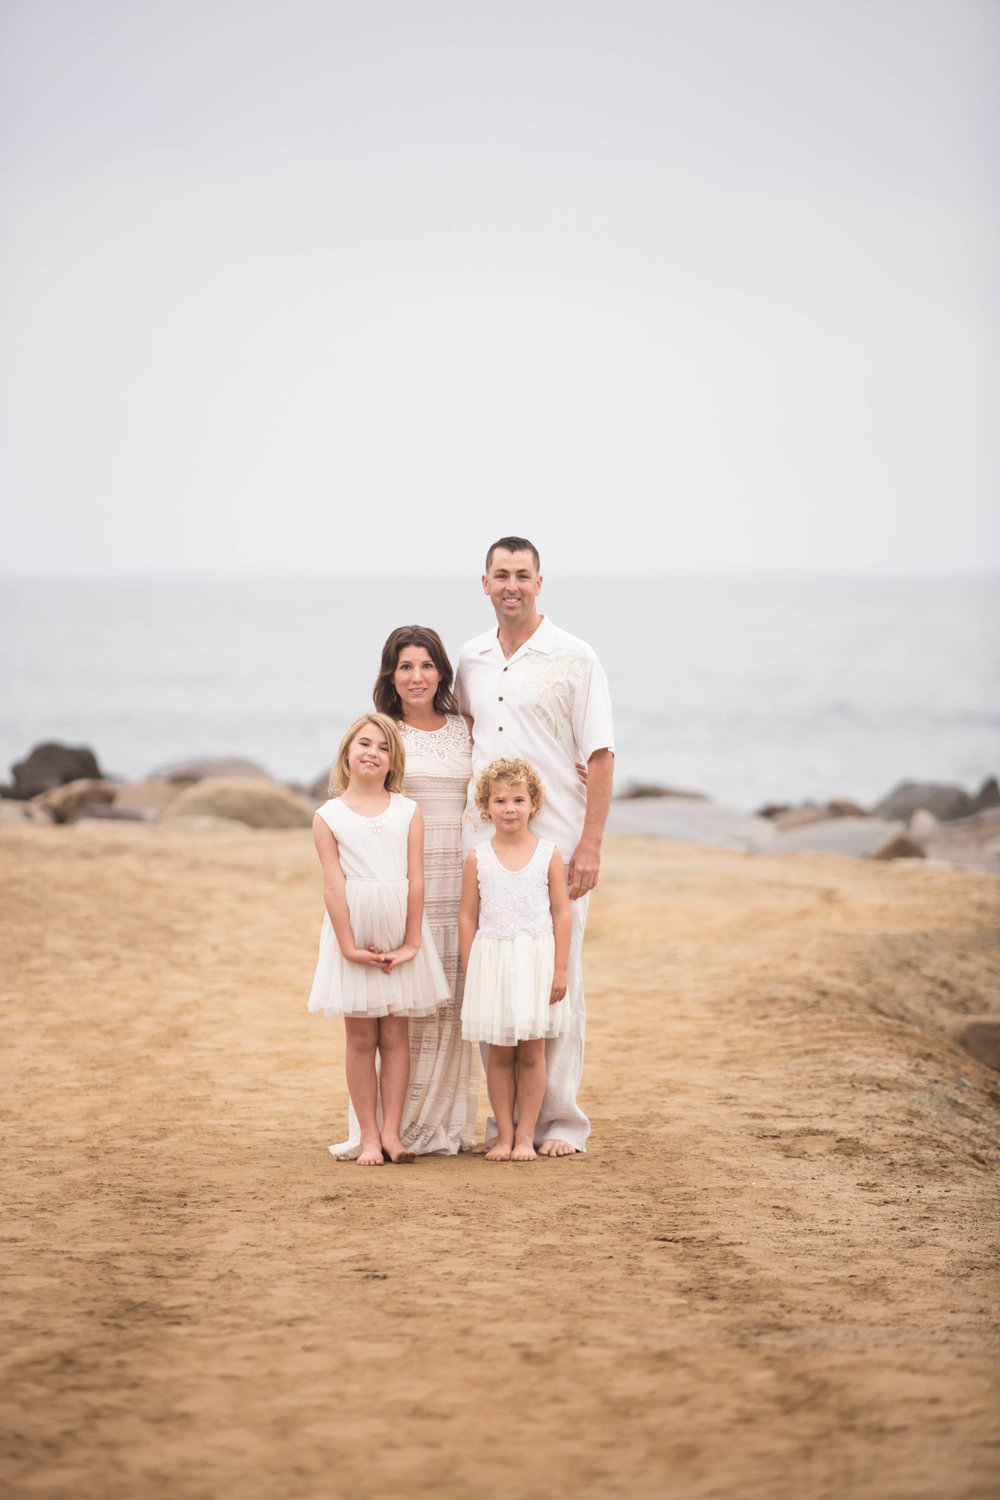 Marble_Falls_Family_Photographer_Jenna_Petty_01.jpg